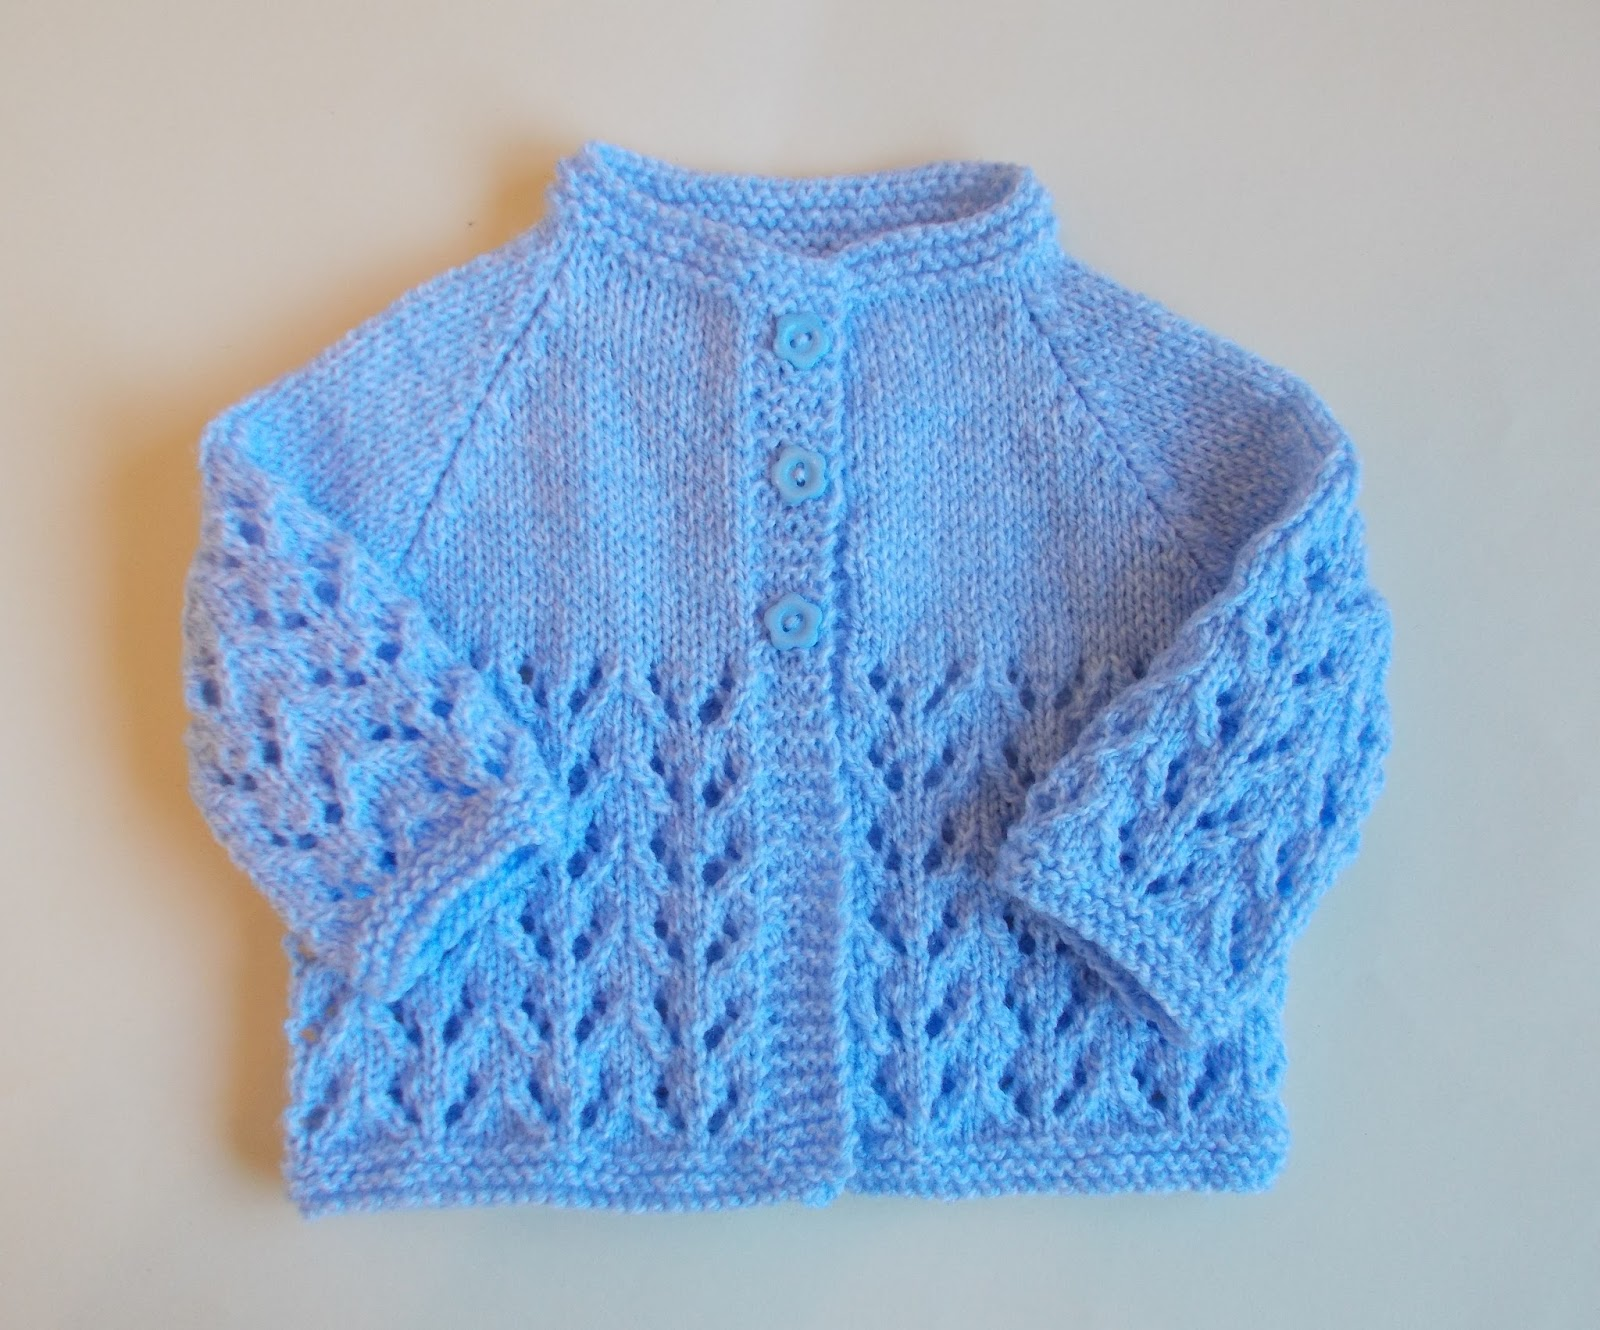 Free Knitting Pattern Toddler Jacket : mariannas lazy daisy days: Bibi Baby Jacket